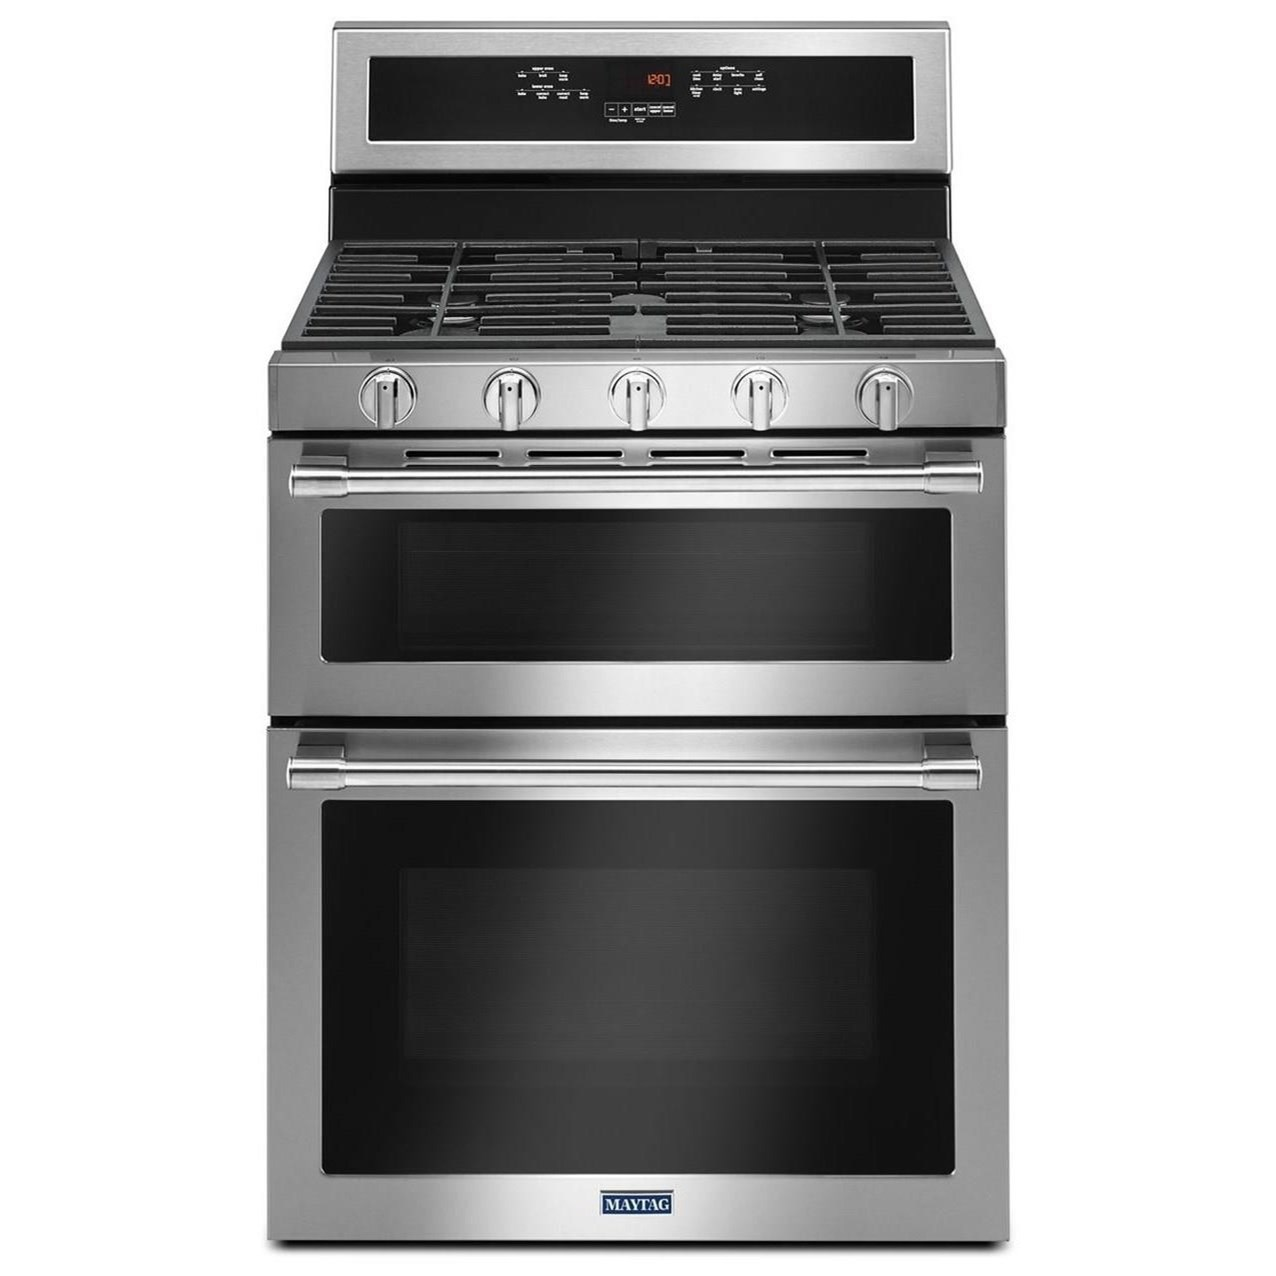 30 Inch Wide Double Oven Gas Range With True Convection 6 0 Cu Ft By Maytag